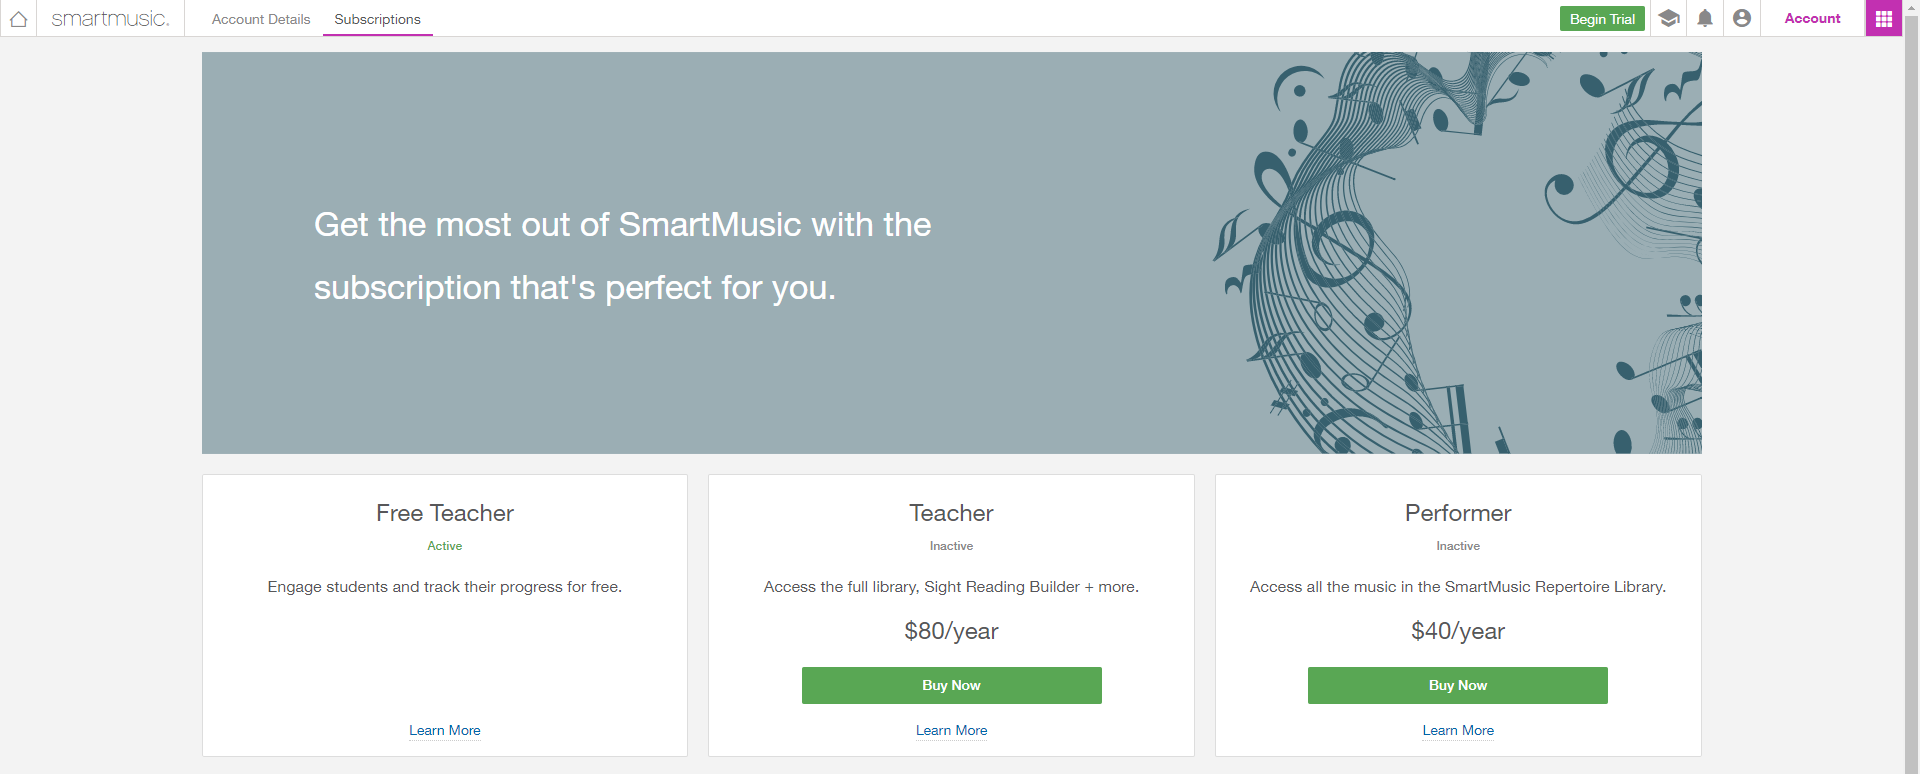 How to Use SmartMusic for Free 1